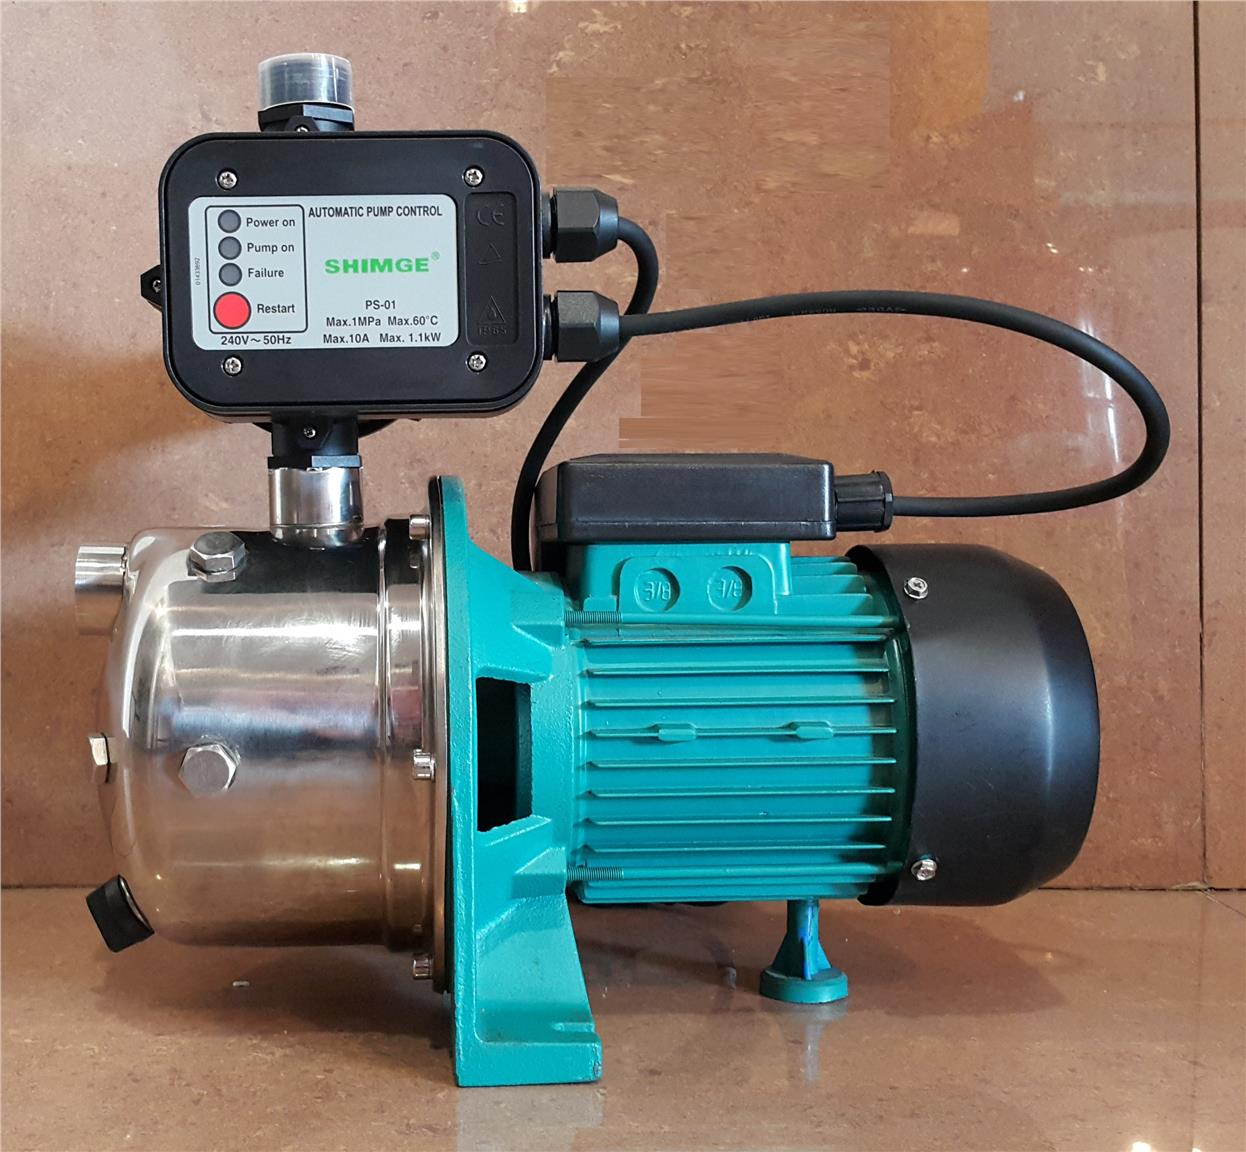 JETST-100 SS SELF PRIMING PUMP WITH CONTROL SWITCH ID662776